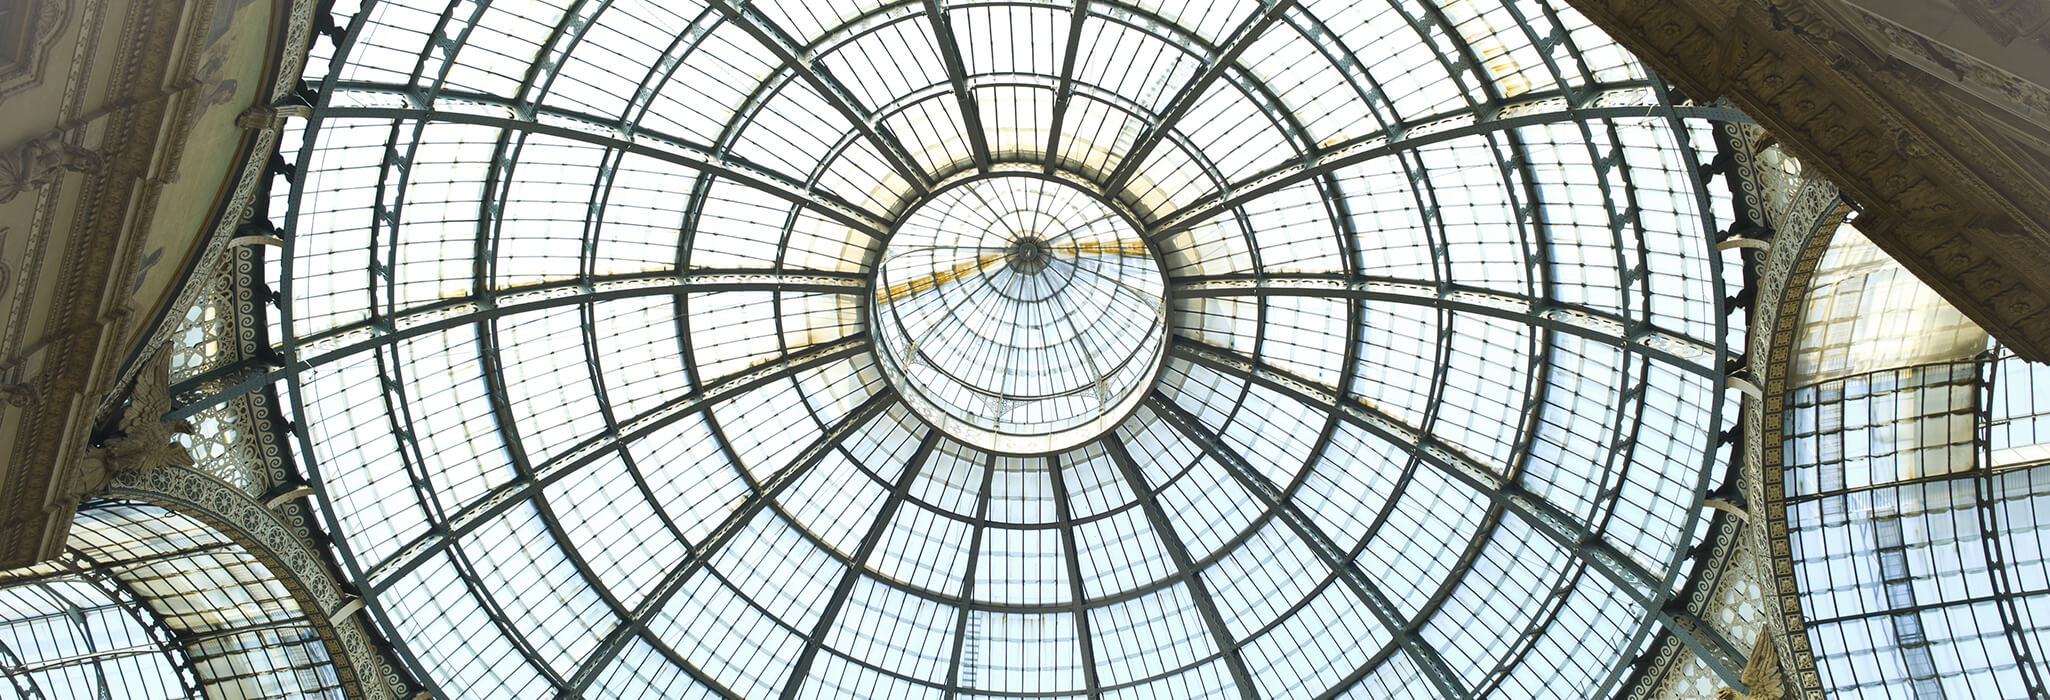 Image of a glass dome